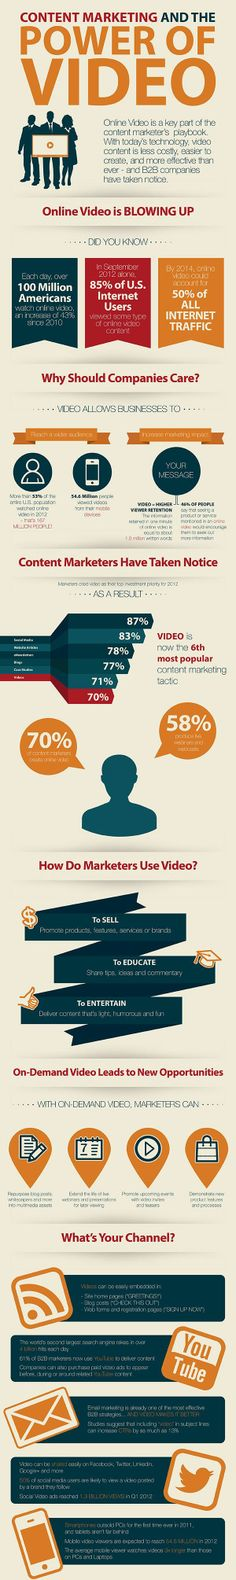 #Content #marketing and the power of #video.